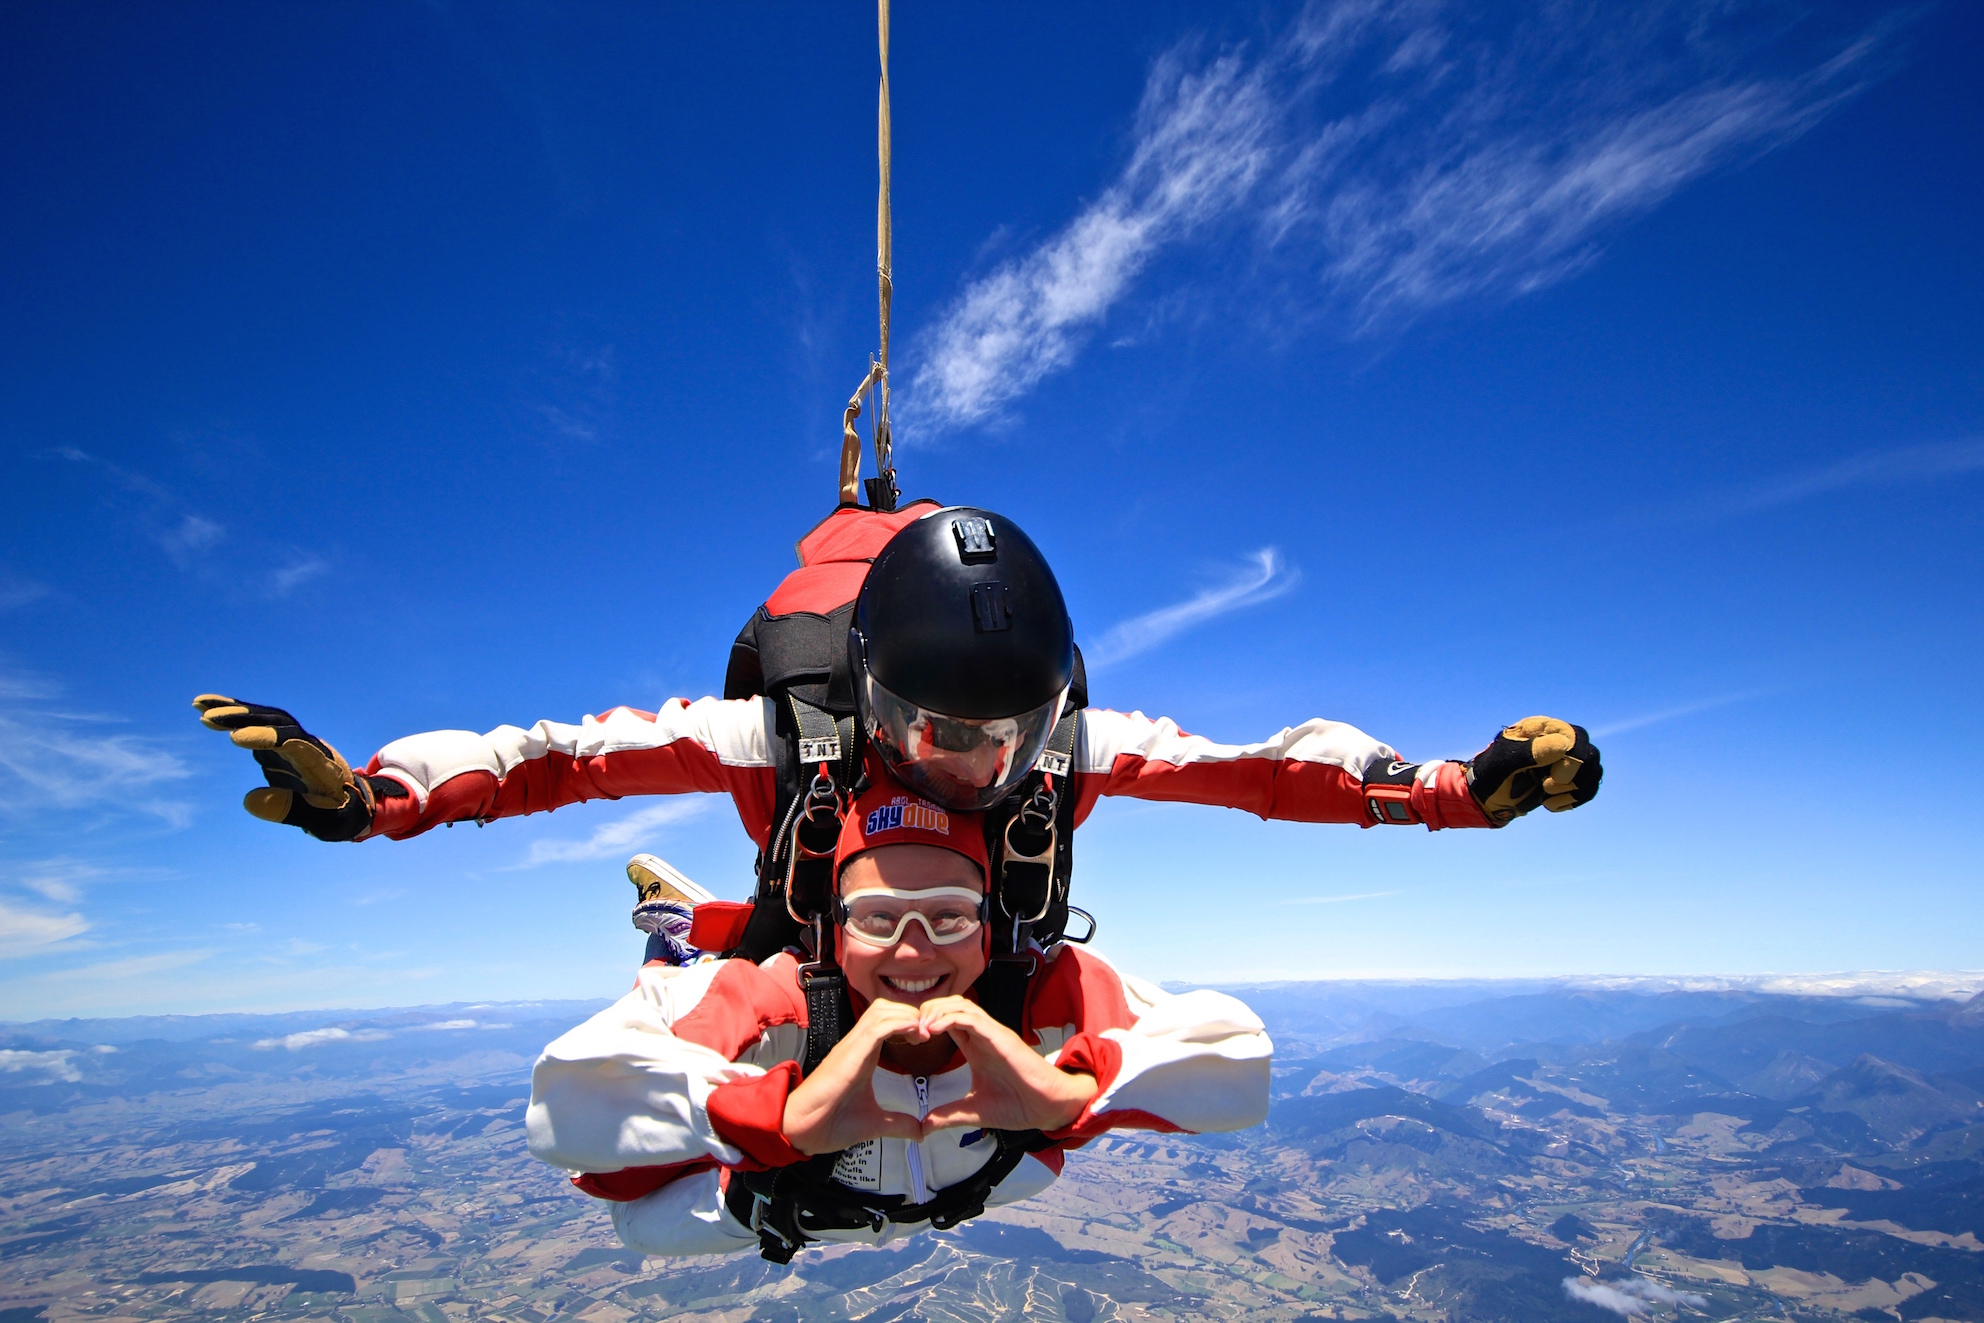 skydive-at-nz074